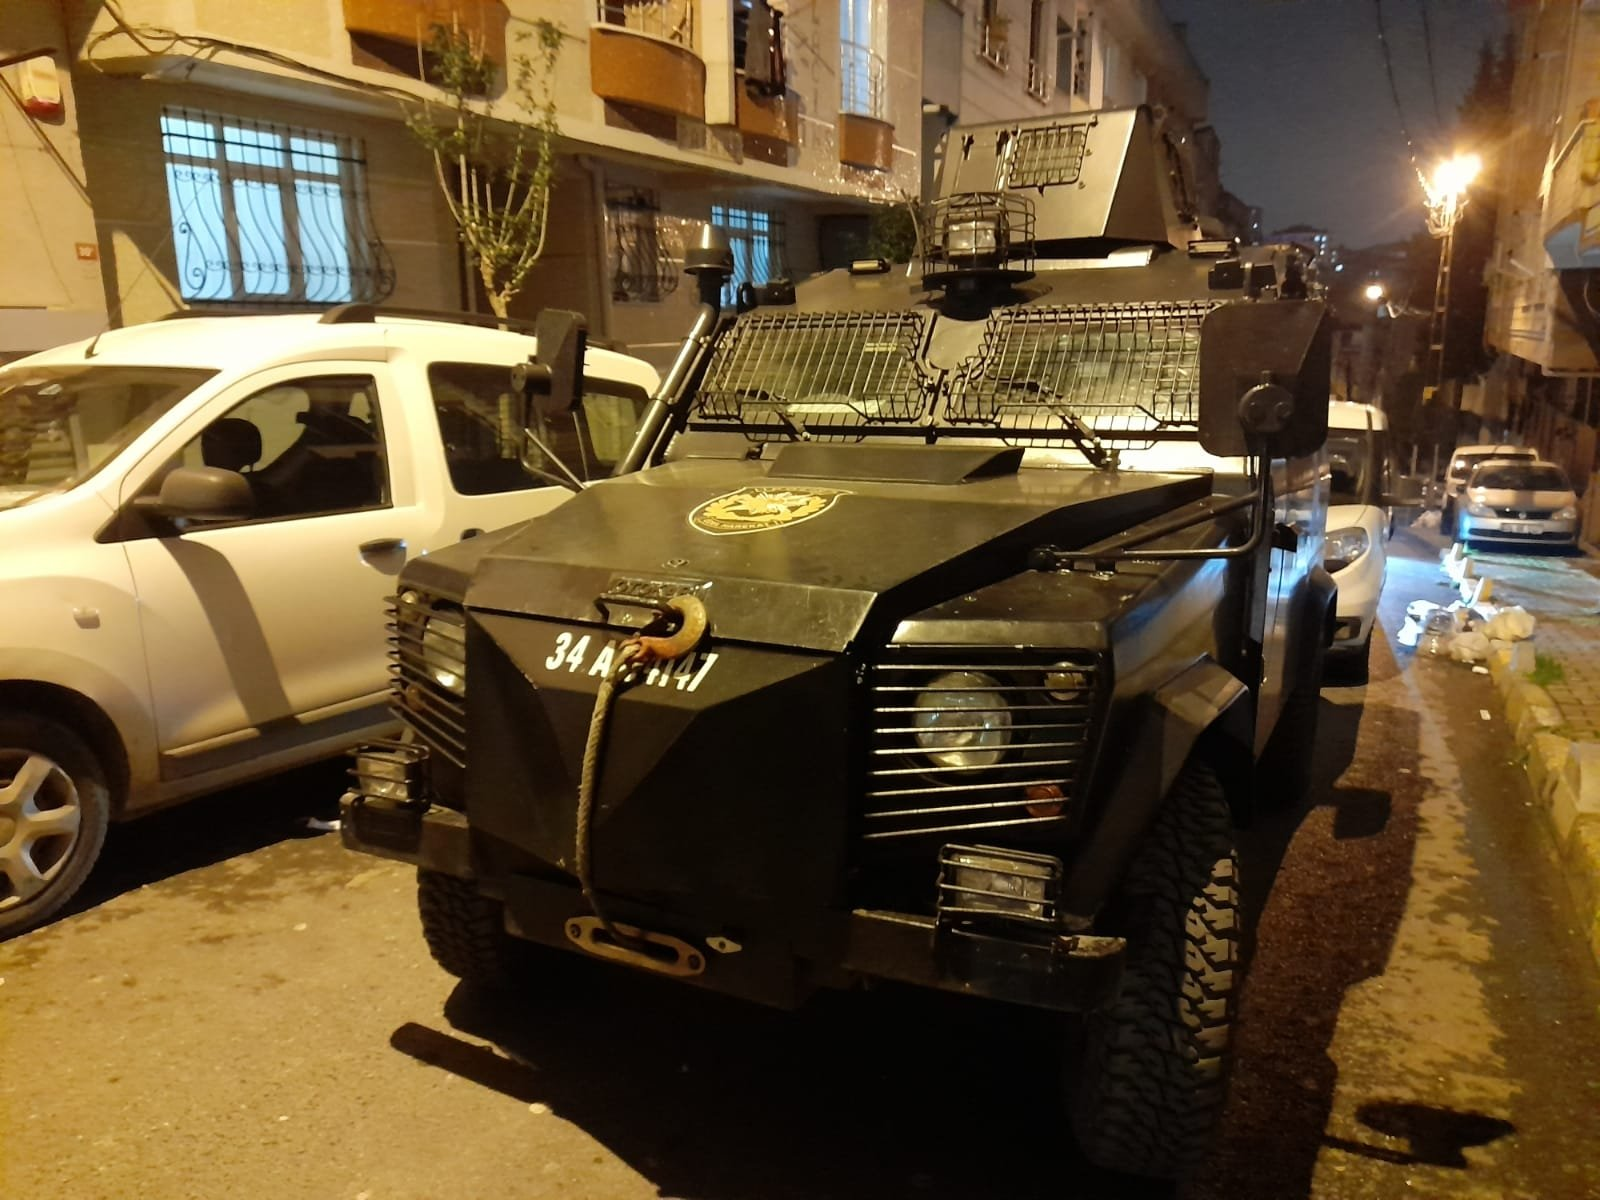 An armored police vehicle pictured in front of an apartment building in Istanbul's Bağcılar district, Istanbul, Turkey, April 7, 2021. (DHA Photo)